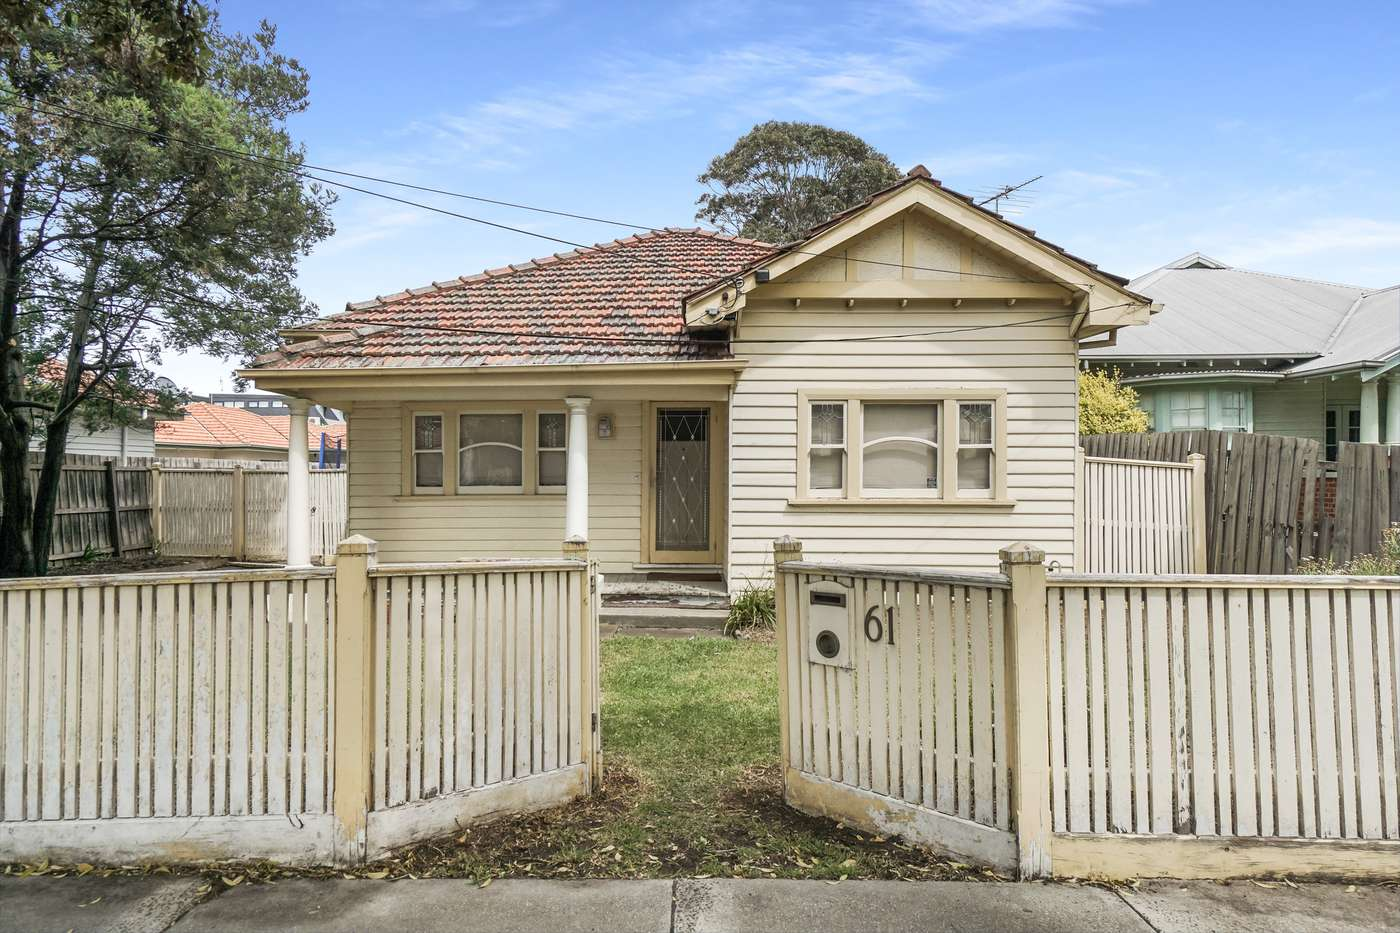 Main view of Homely house listing, 61 Challis Street, Newport, VIC 3015